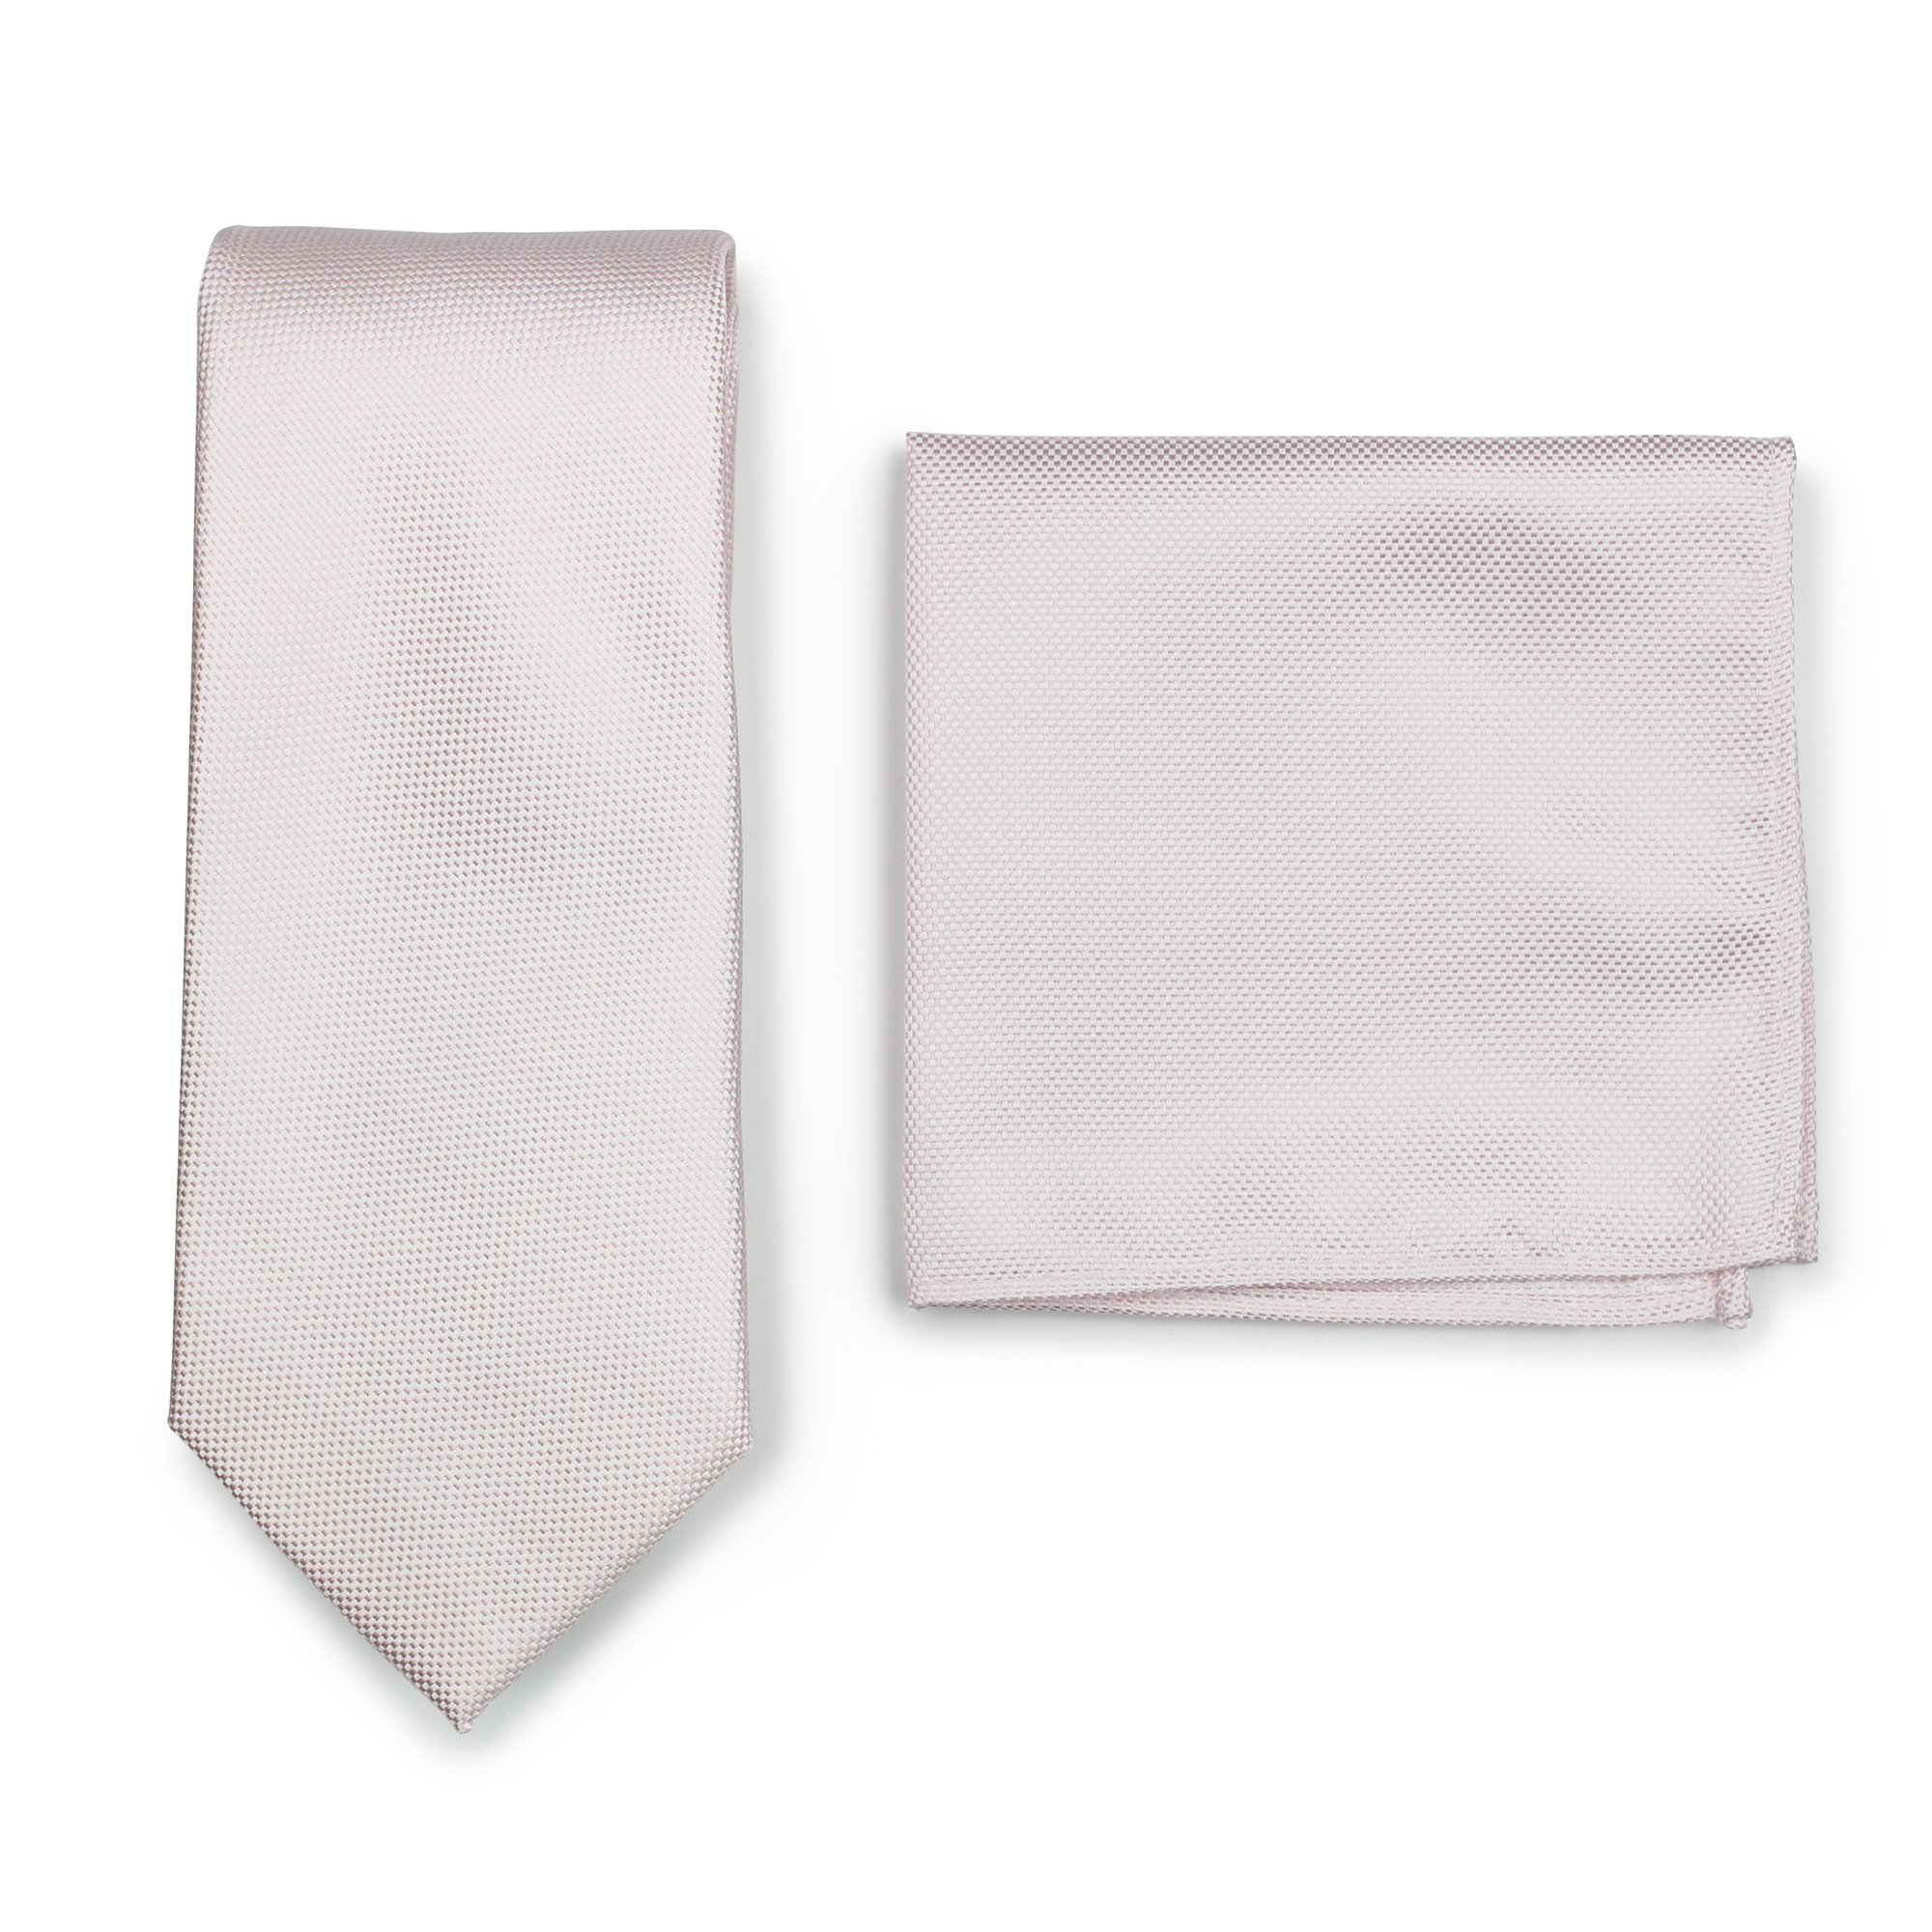 Bows-N-Ties Men's Solid Necktie and Pocket Square Set Matte Microtexture Finish (Blush)